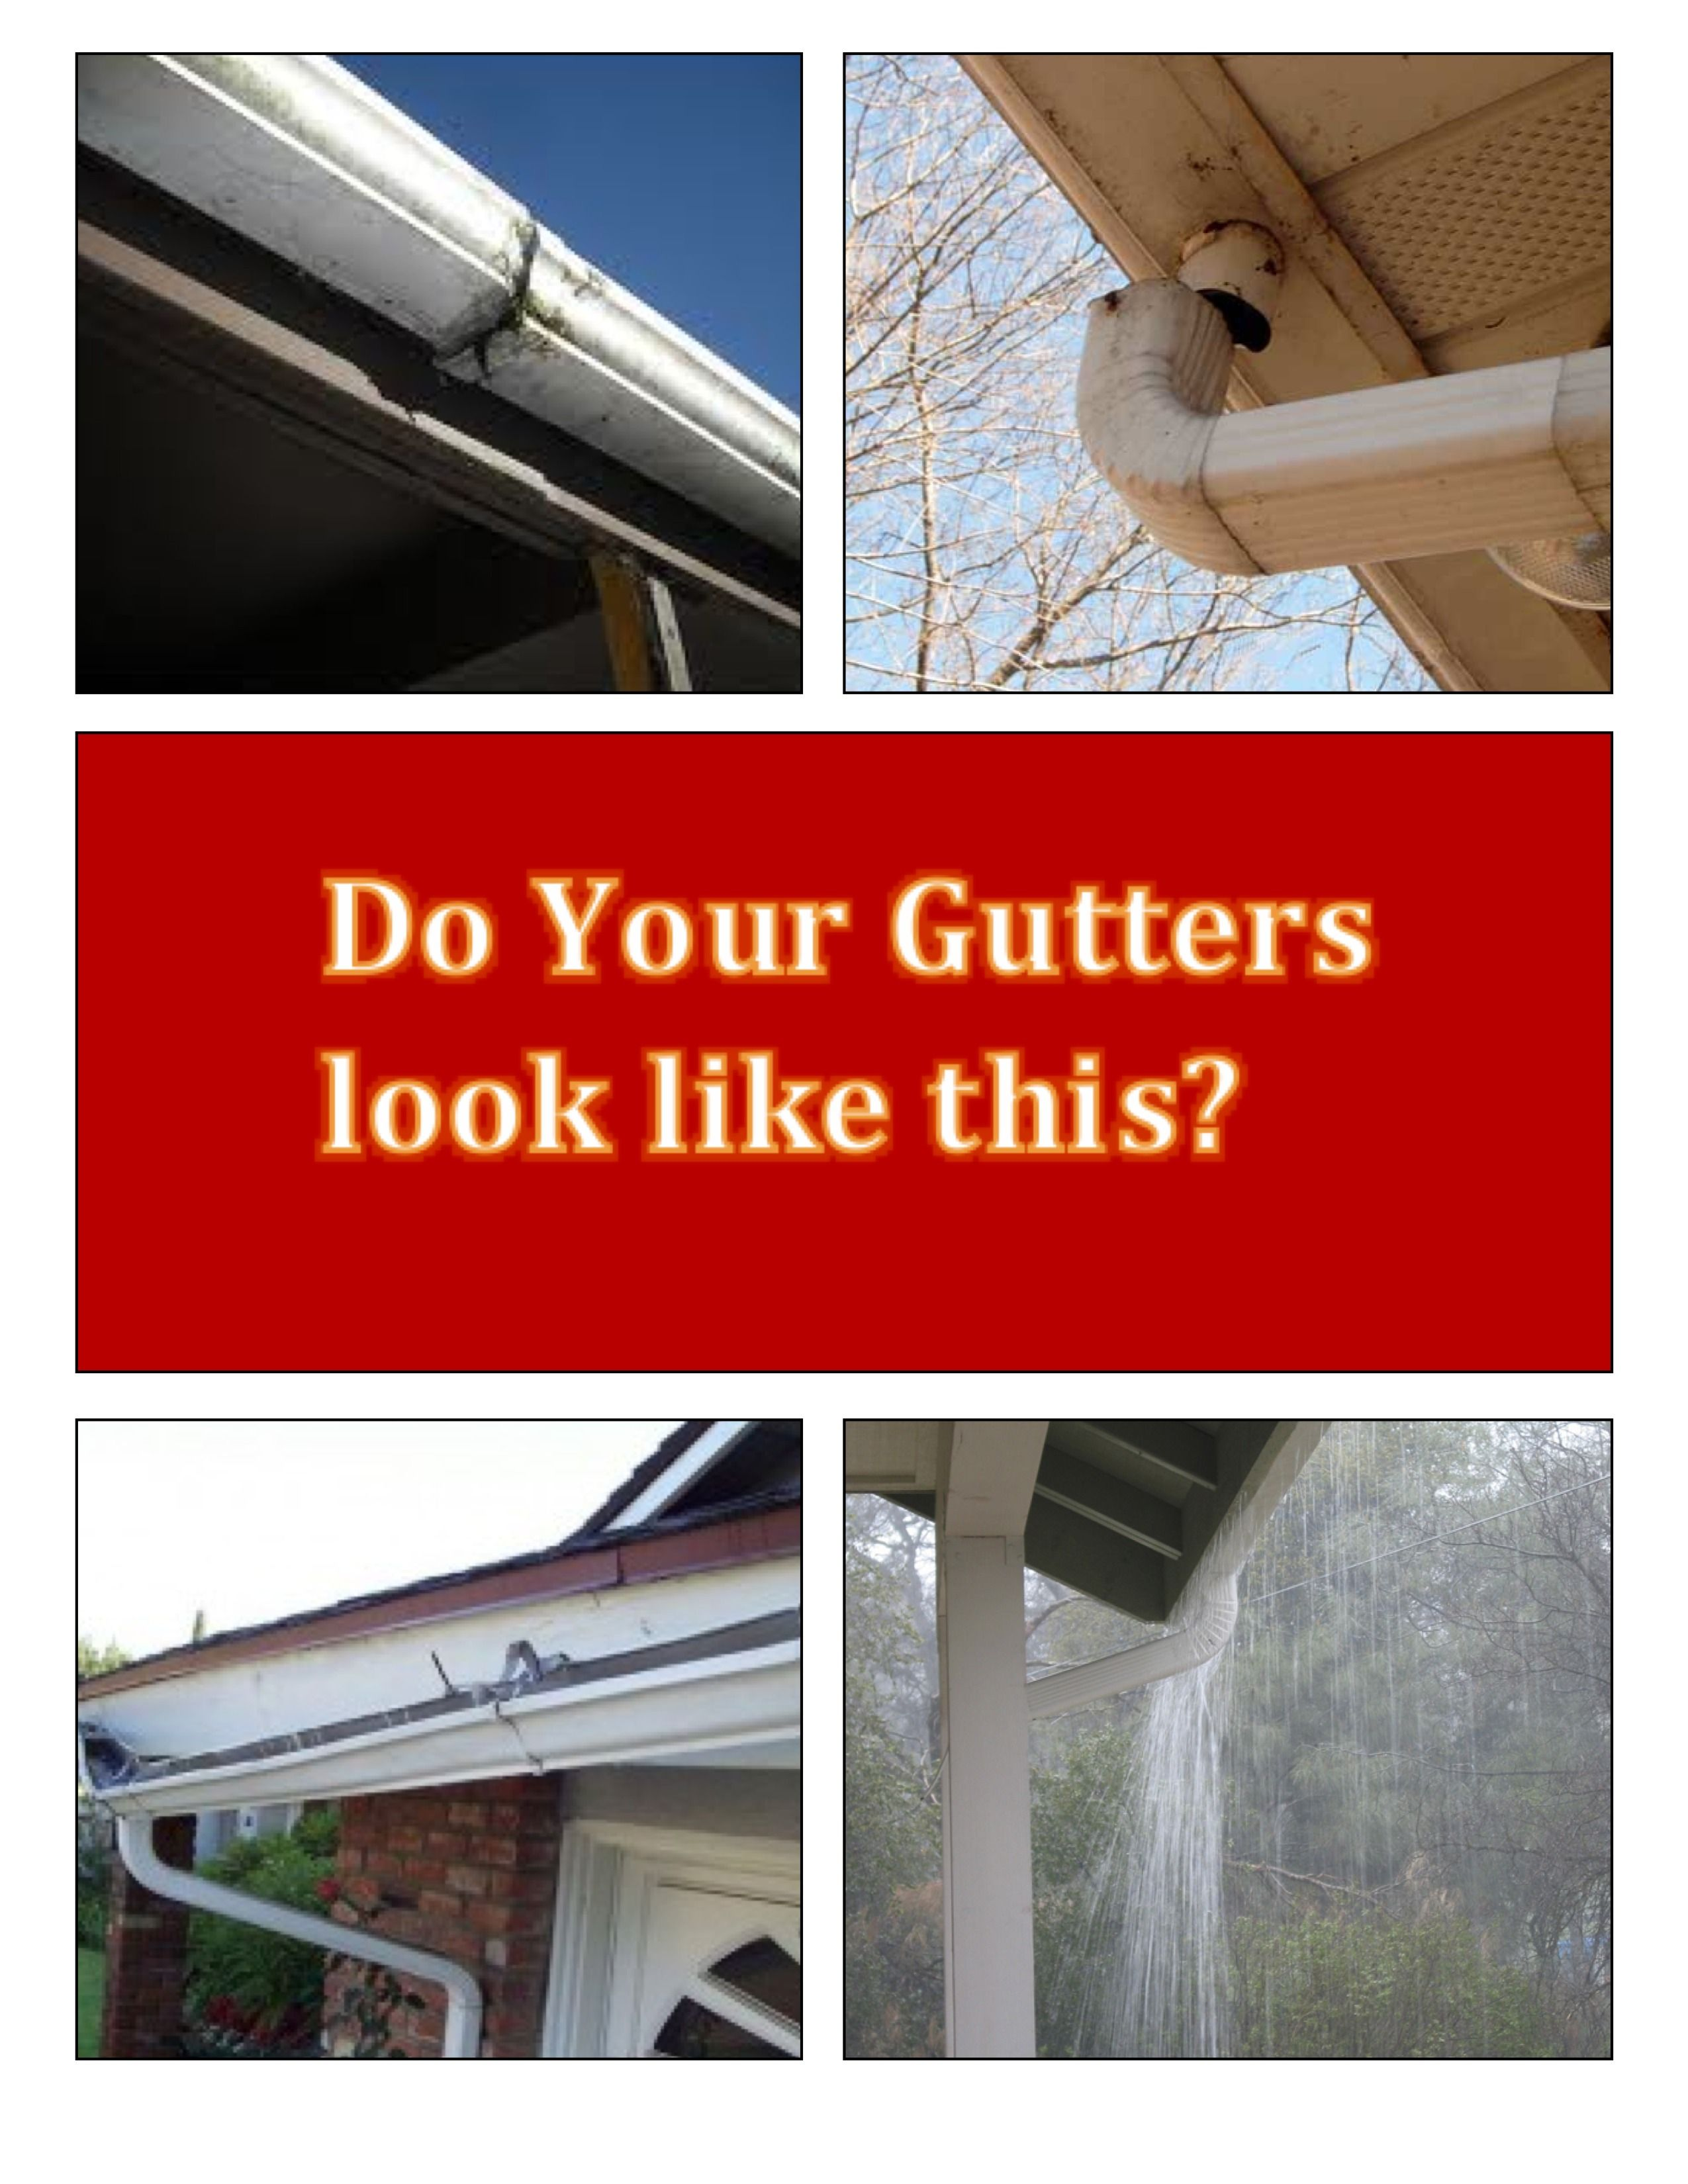 Call Us Today For A Free In Home Estimate 423 323 4606 C C Exteriors Llc With Images Exterior Renovation Seamless Gutters Gutters